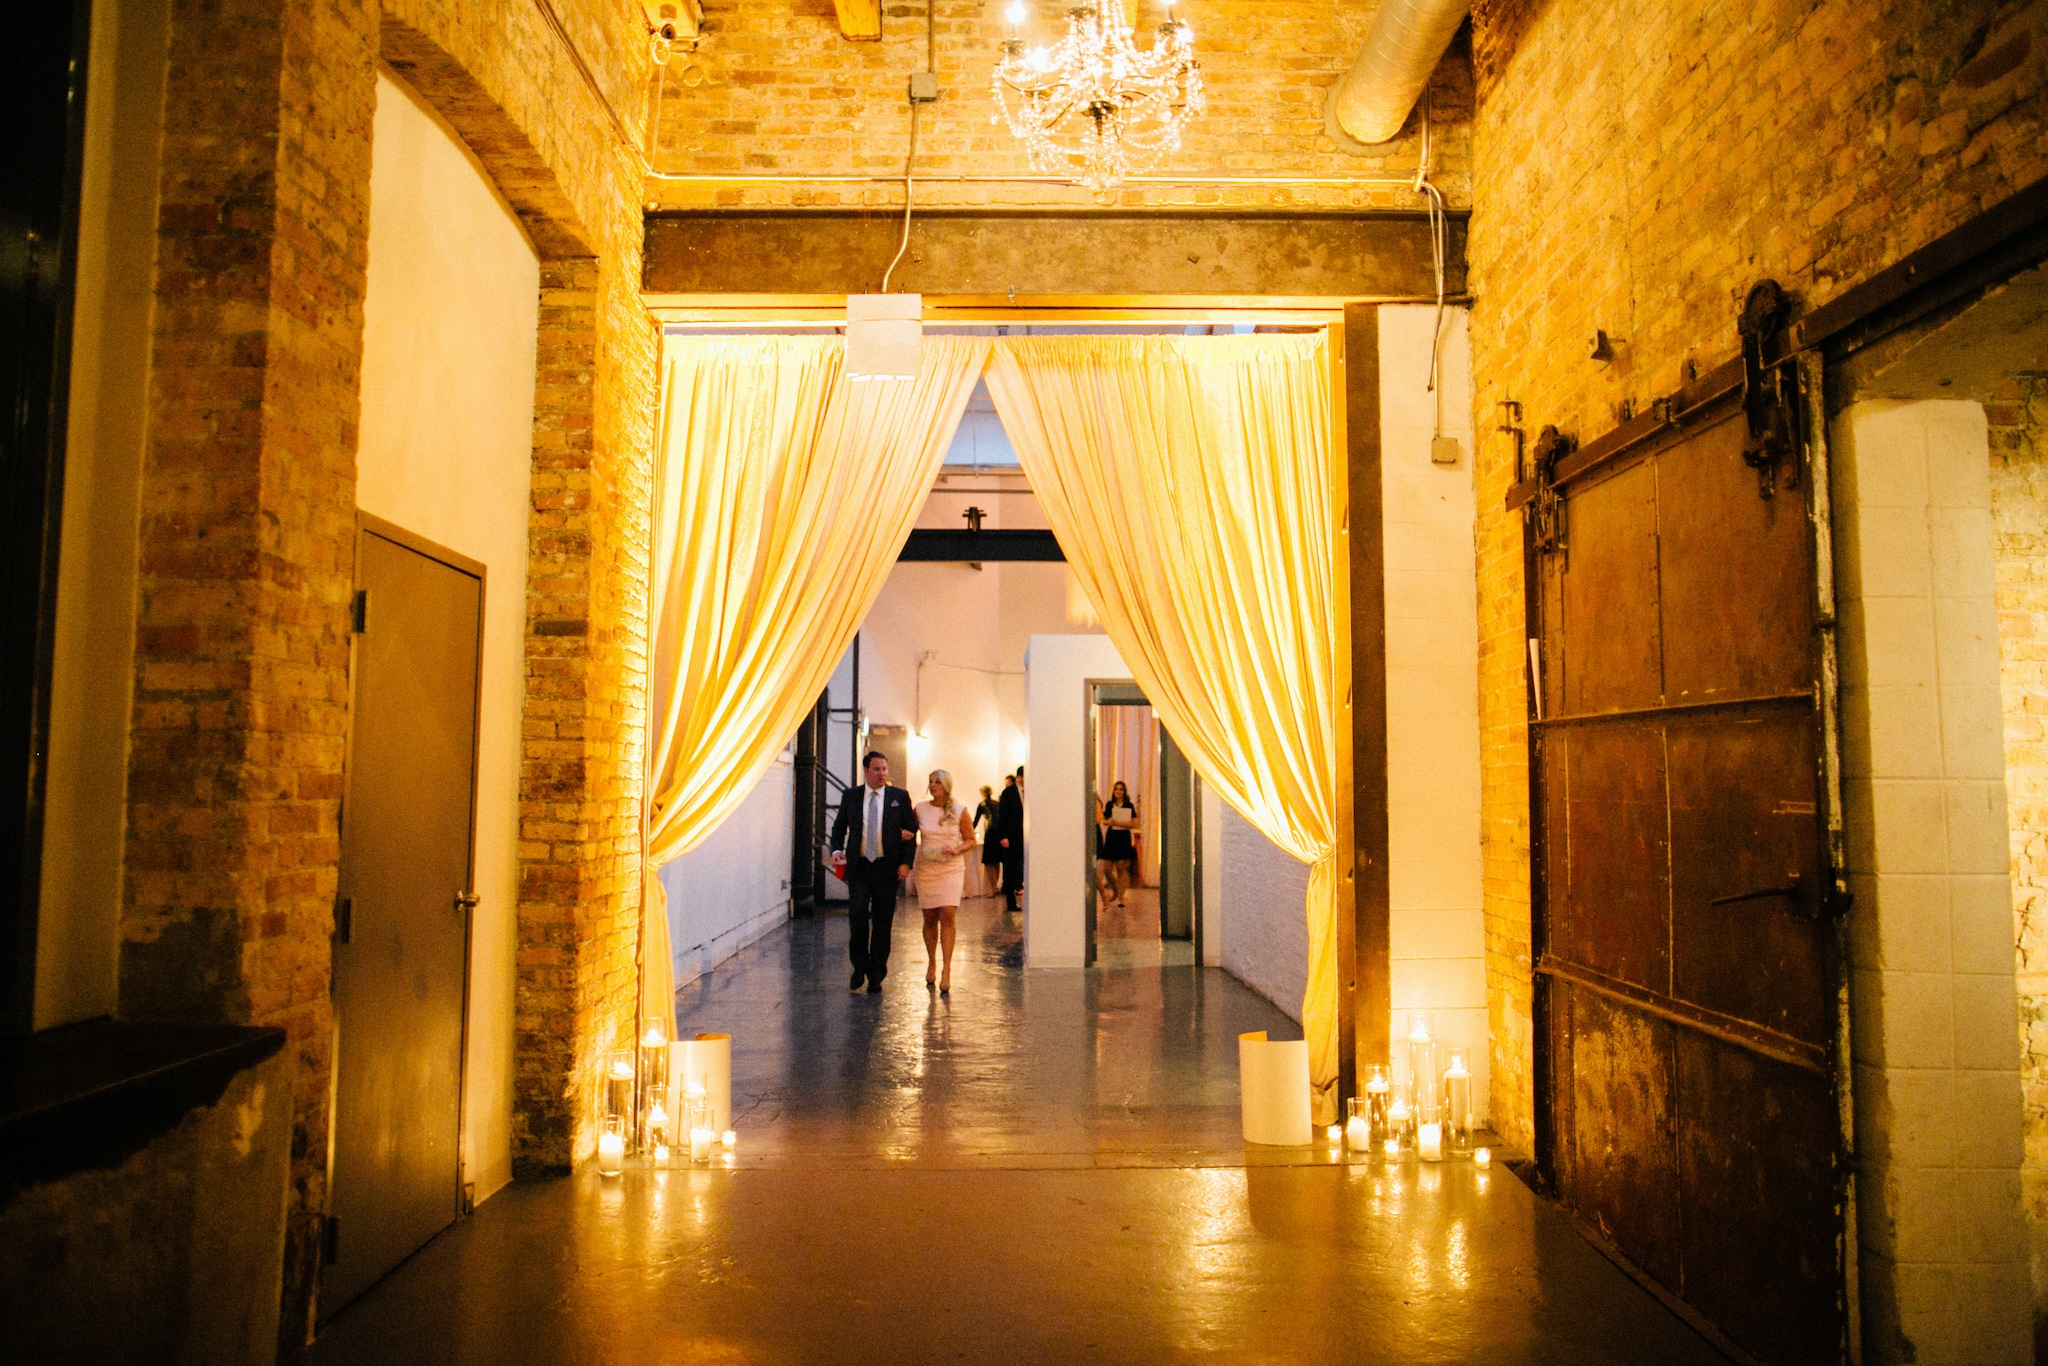 Chicago West Loop Venues - Moonlight Studios